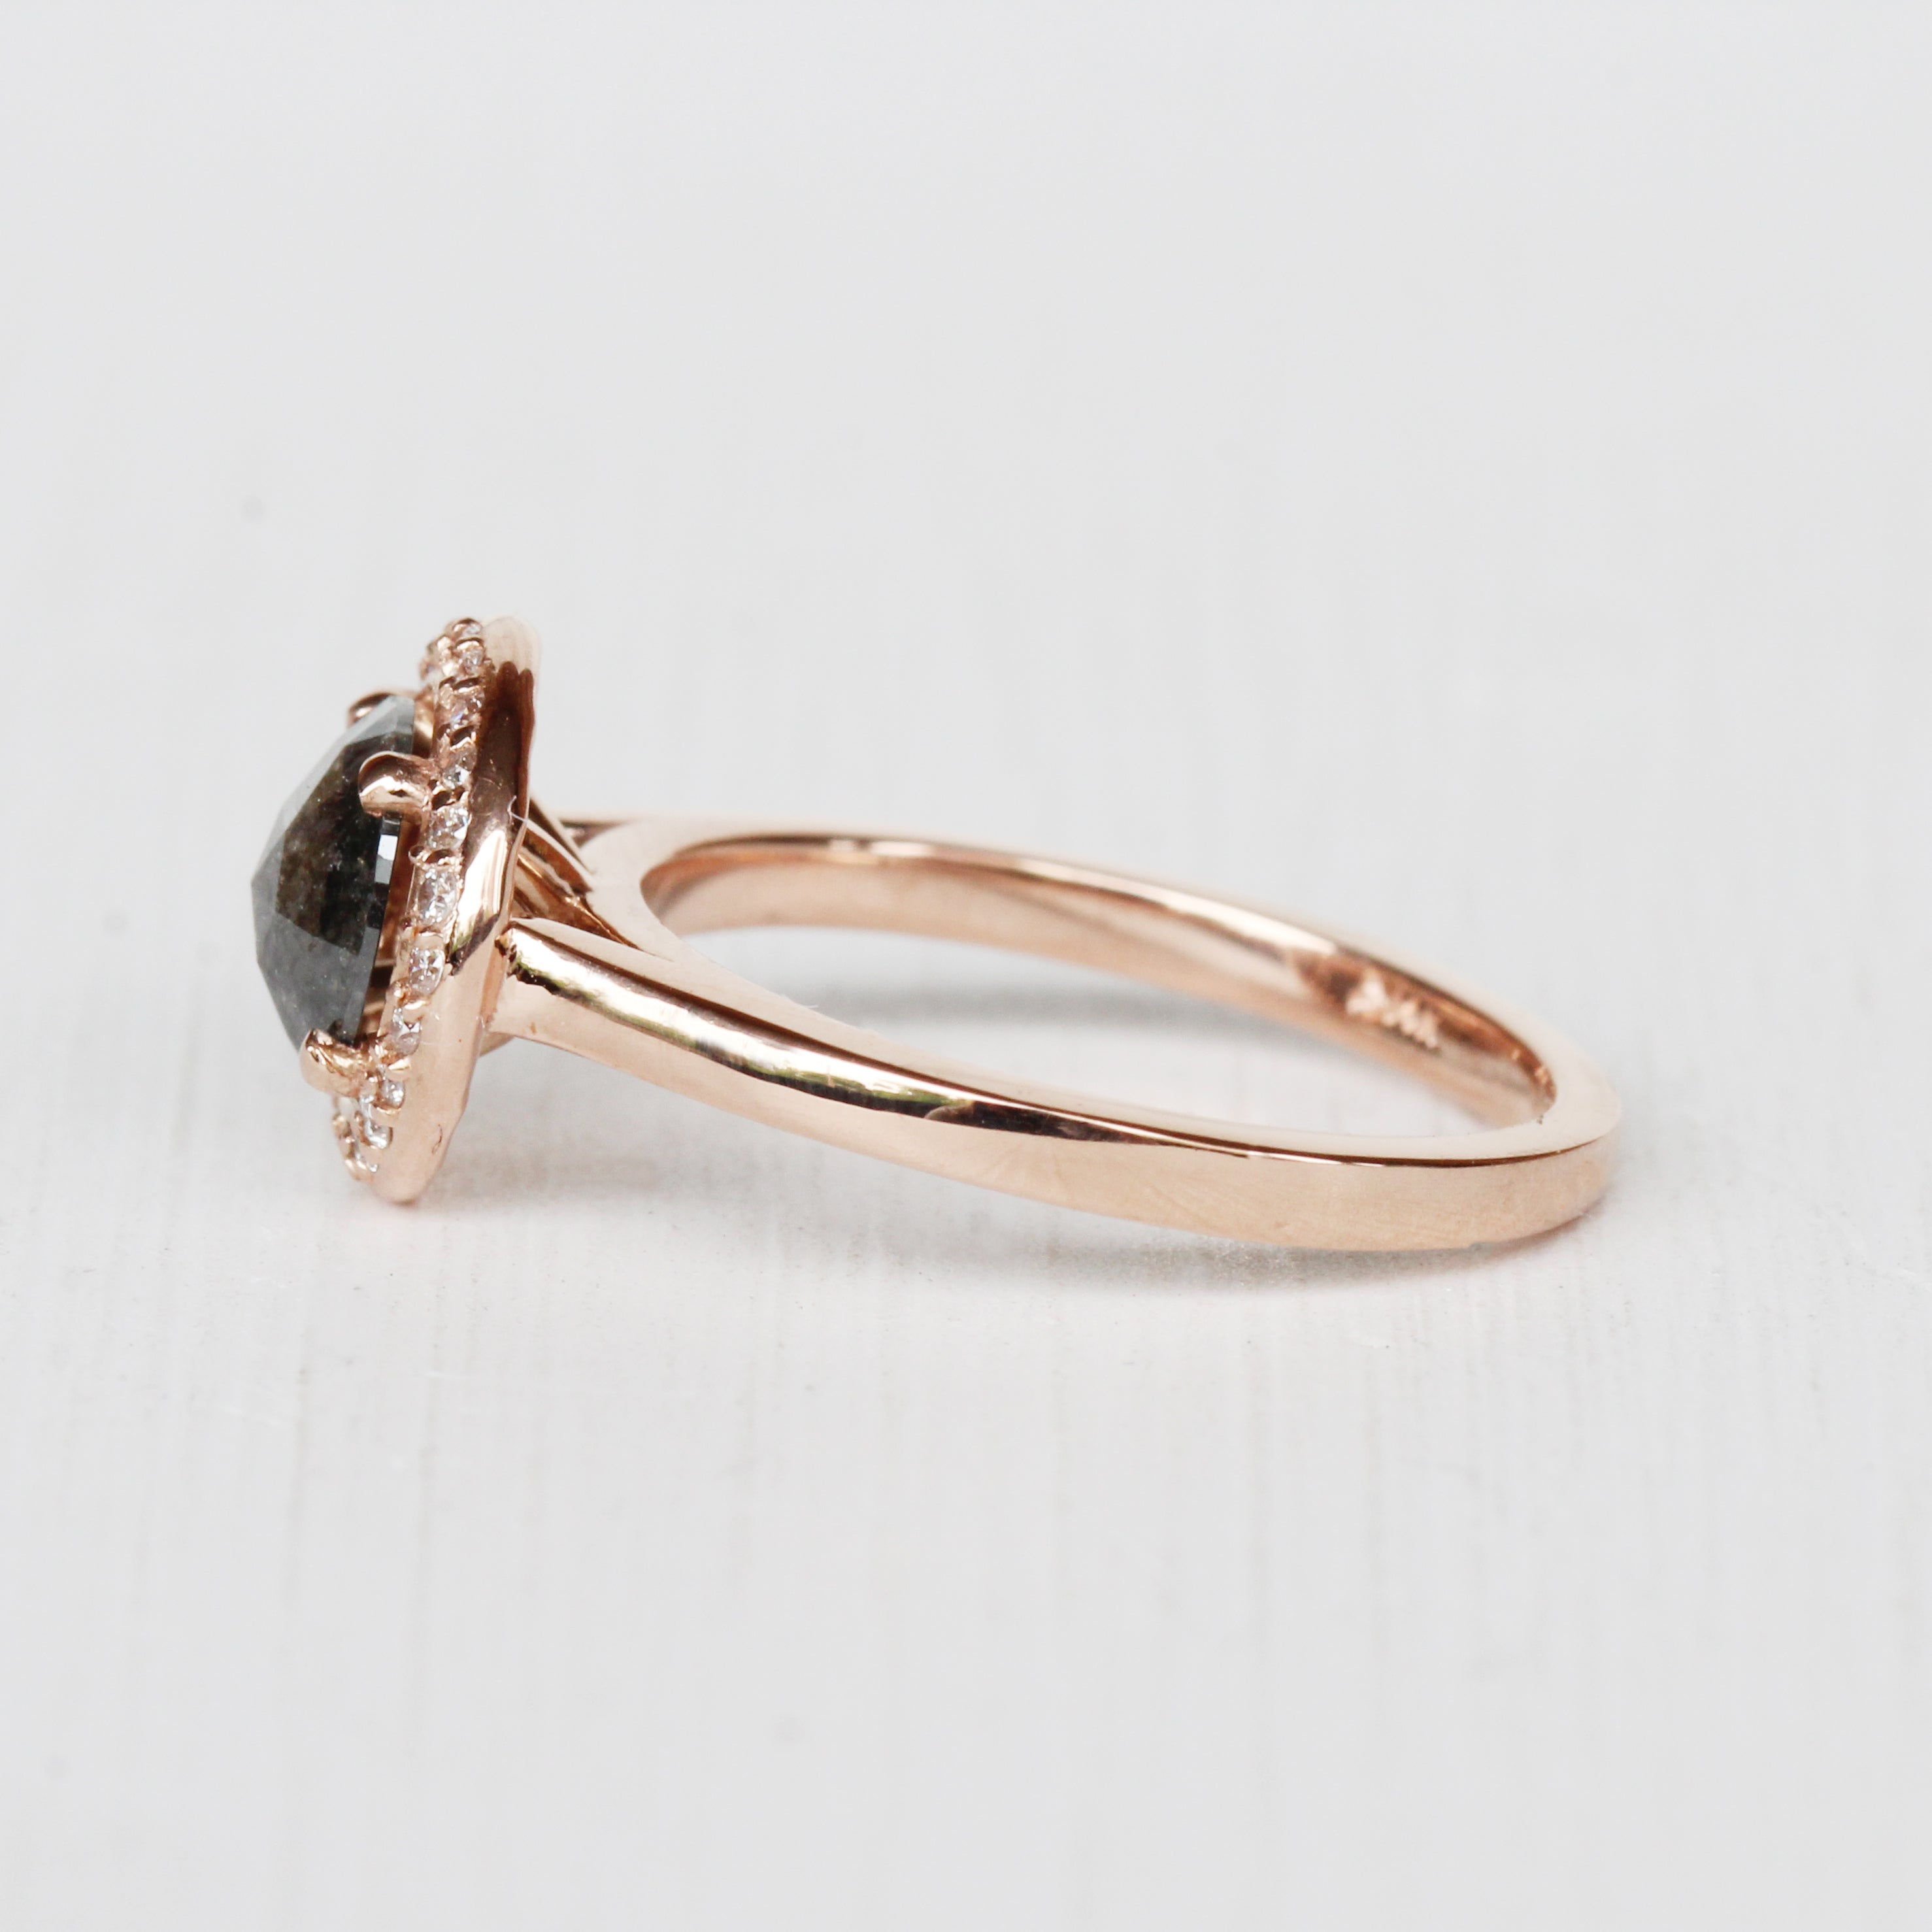 Amara Ring with a Celestial Black Diamond in 14k Rose Gold - Ready to Size and Ship